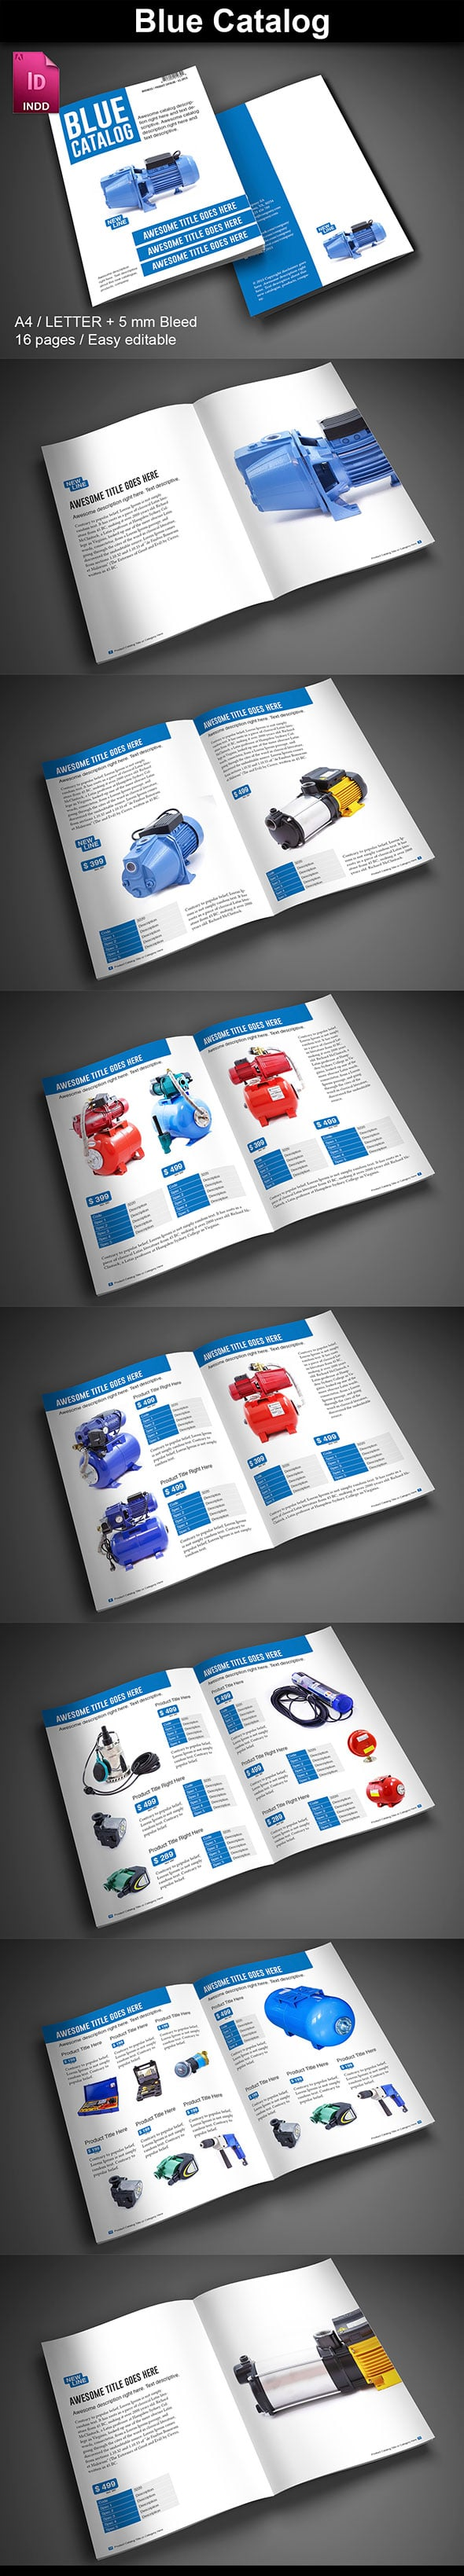 15  InDesign Product Catalogs - just $19 - 02 BlueCatalog ImagePreview2